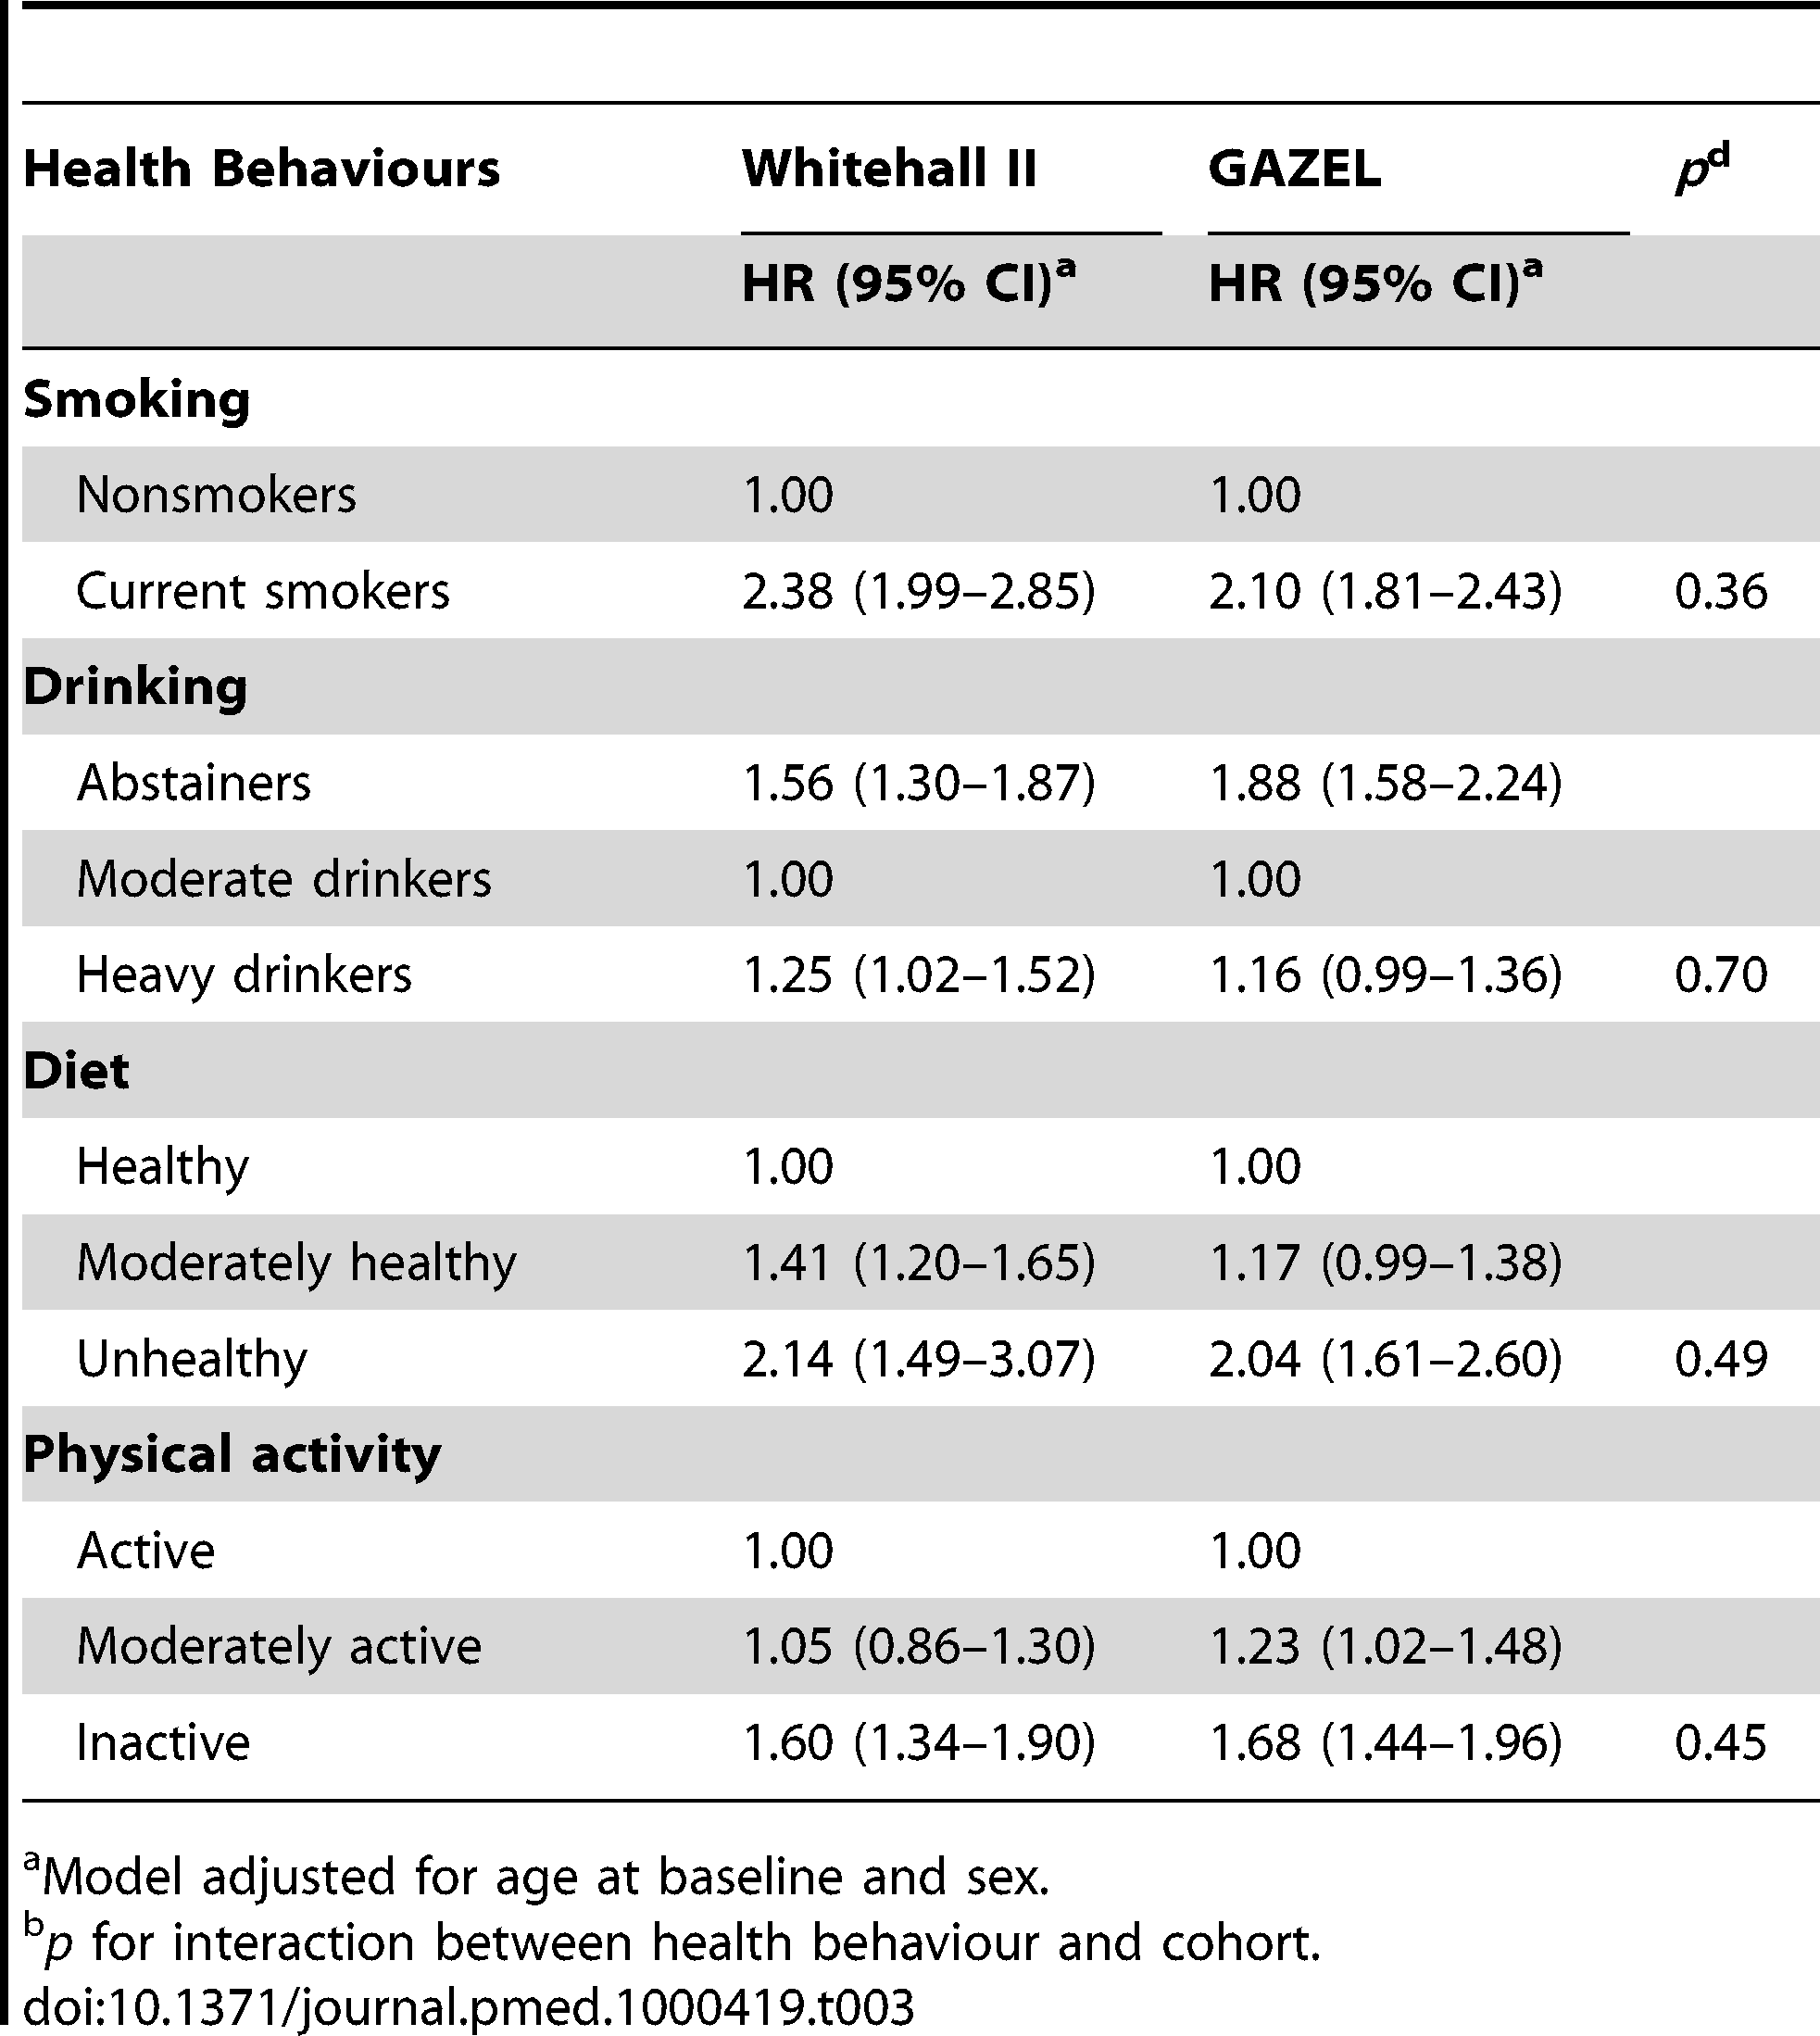 The association between health behaviours and all-cause mortality in the British Whitehall II (<i>n=</i>9,771, deaths =693) and the French GAZEL (<i>n=</i>17,760, deaths =908) cohort studies.